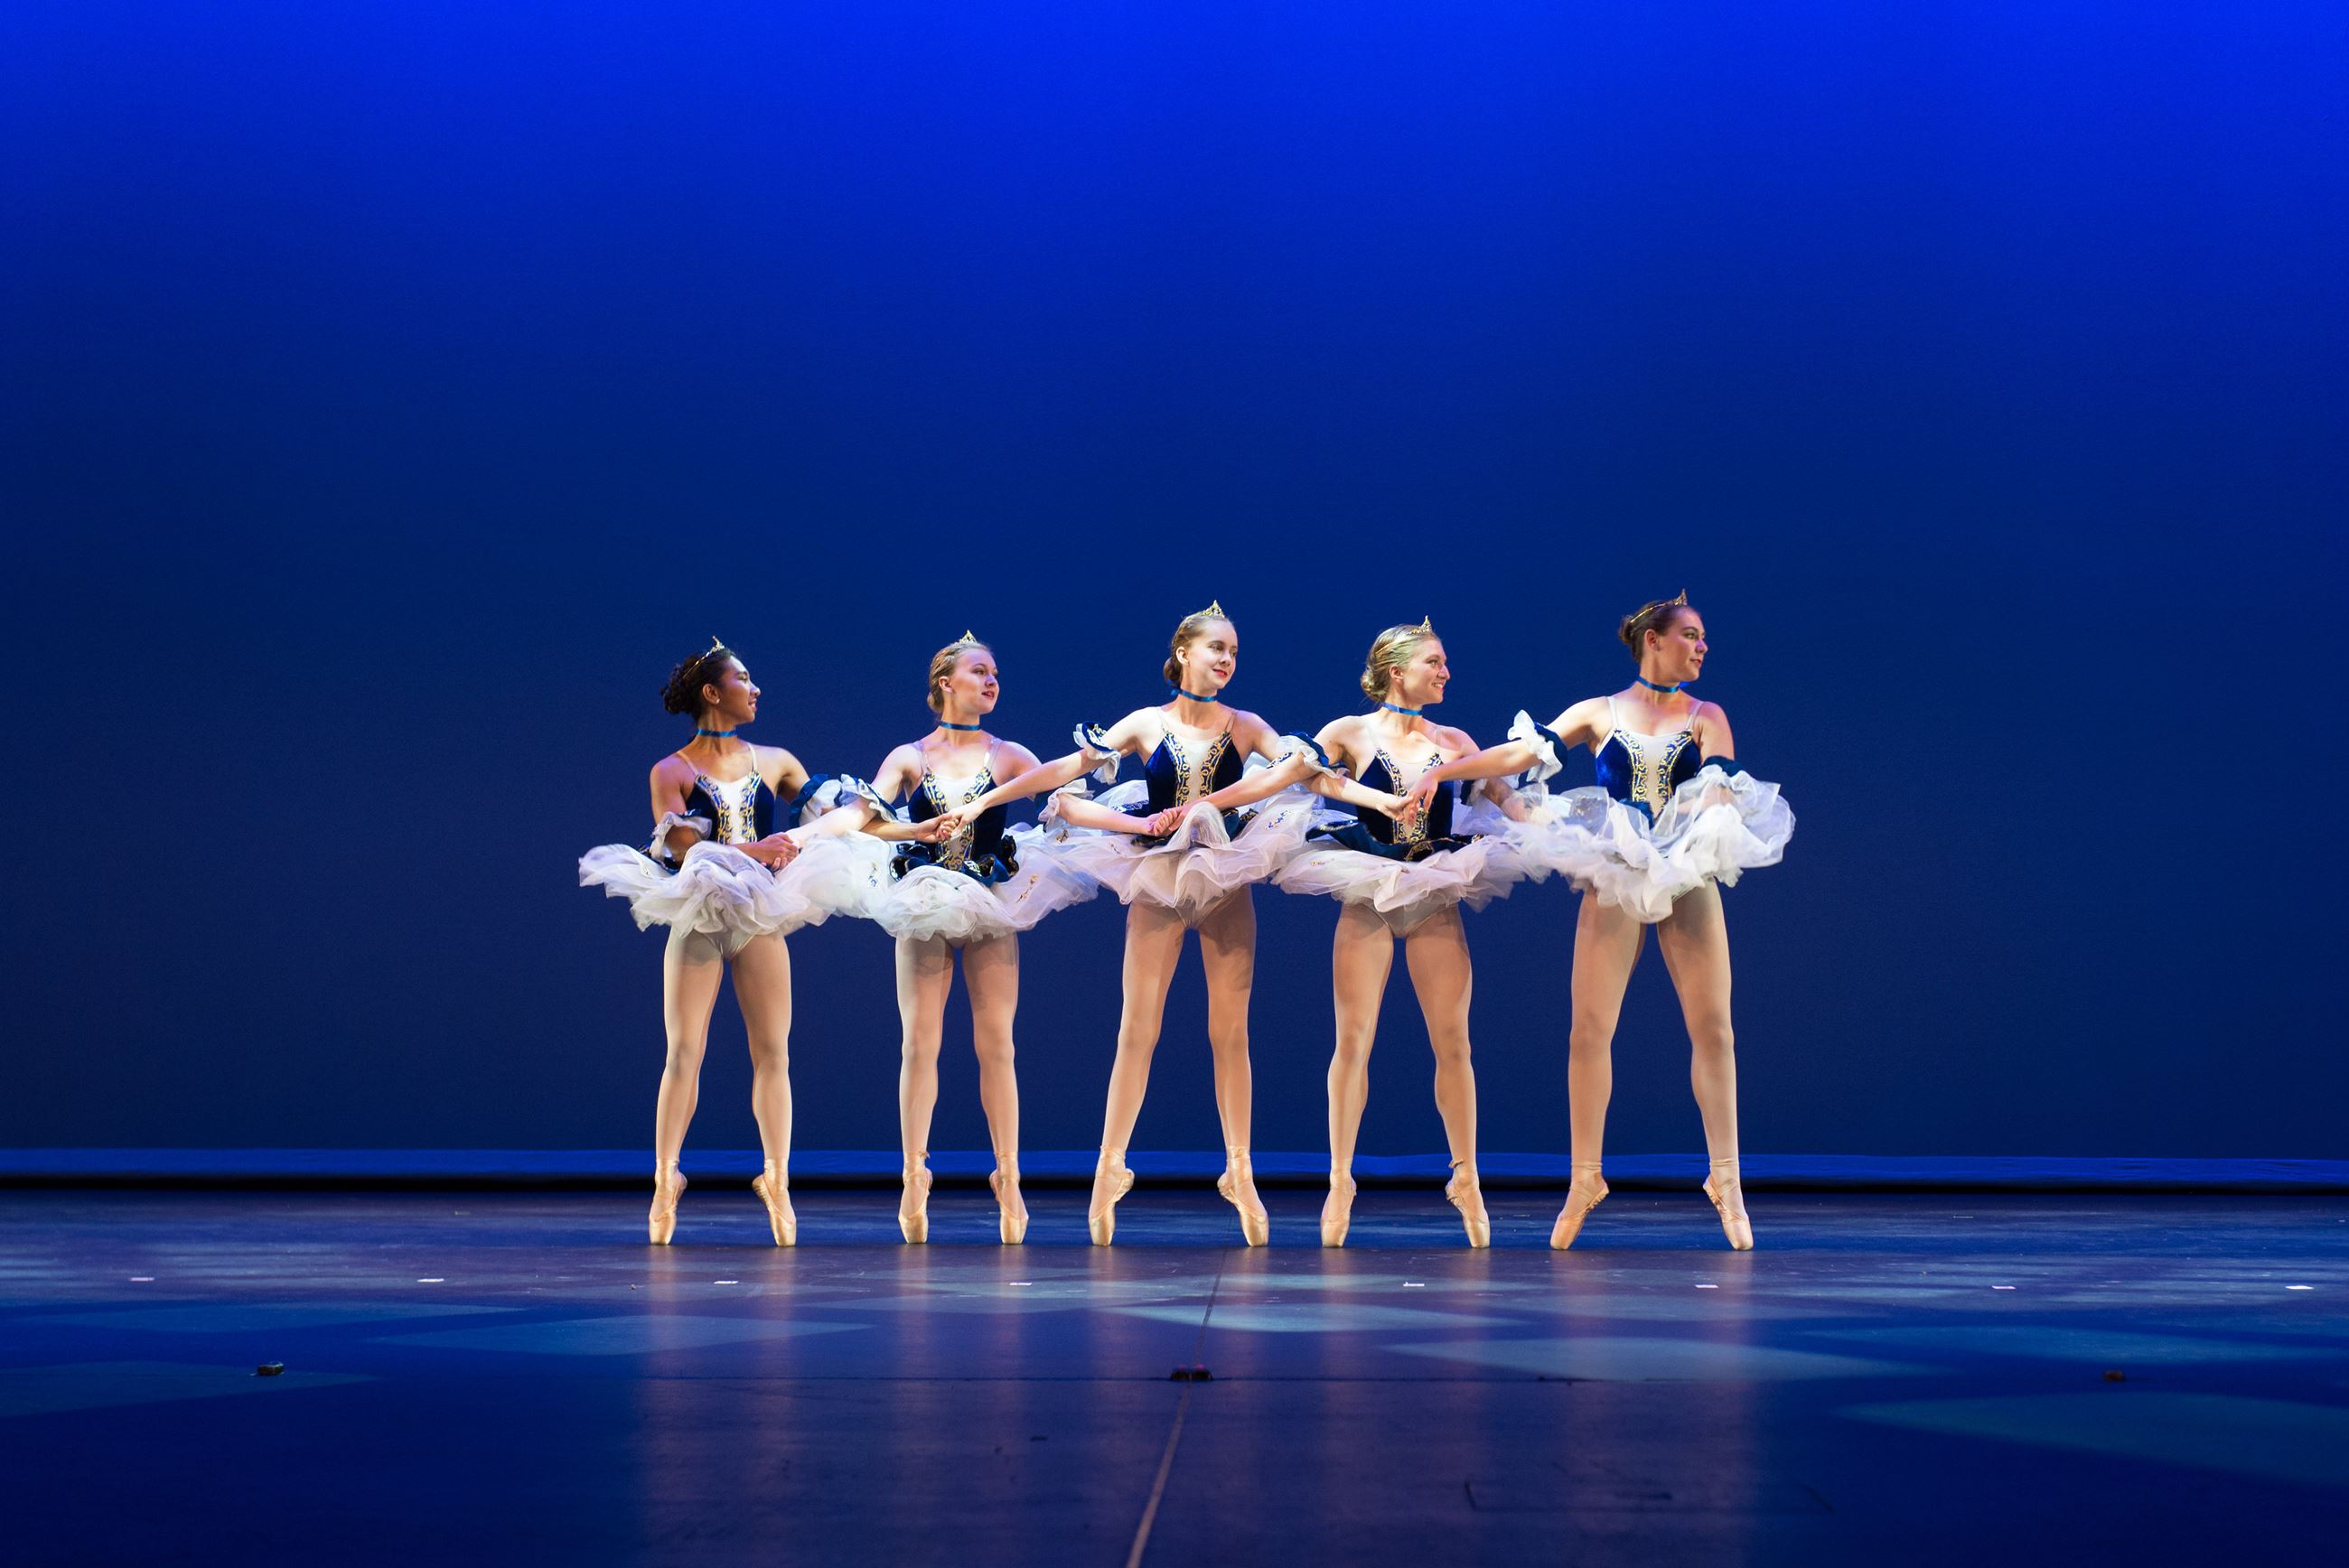 photo of young girls ballet dancing on pointe